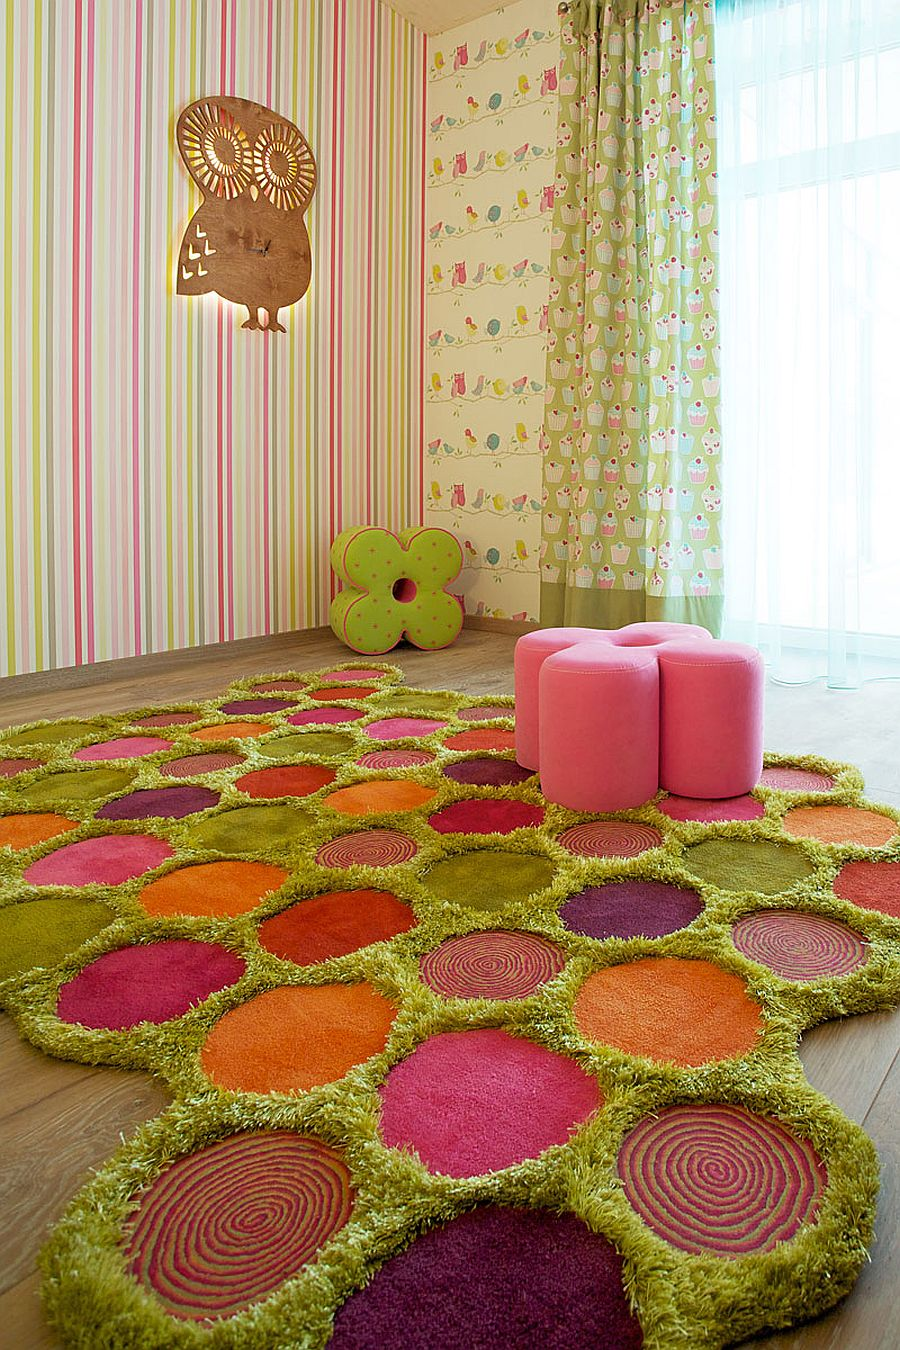 Asymmetrical Grand MX Rug is a fun and practical addition to the kids' room [Design: Dalius & Greta Design]